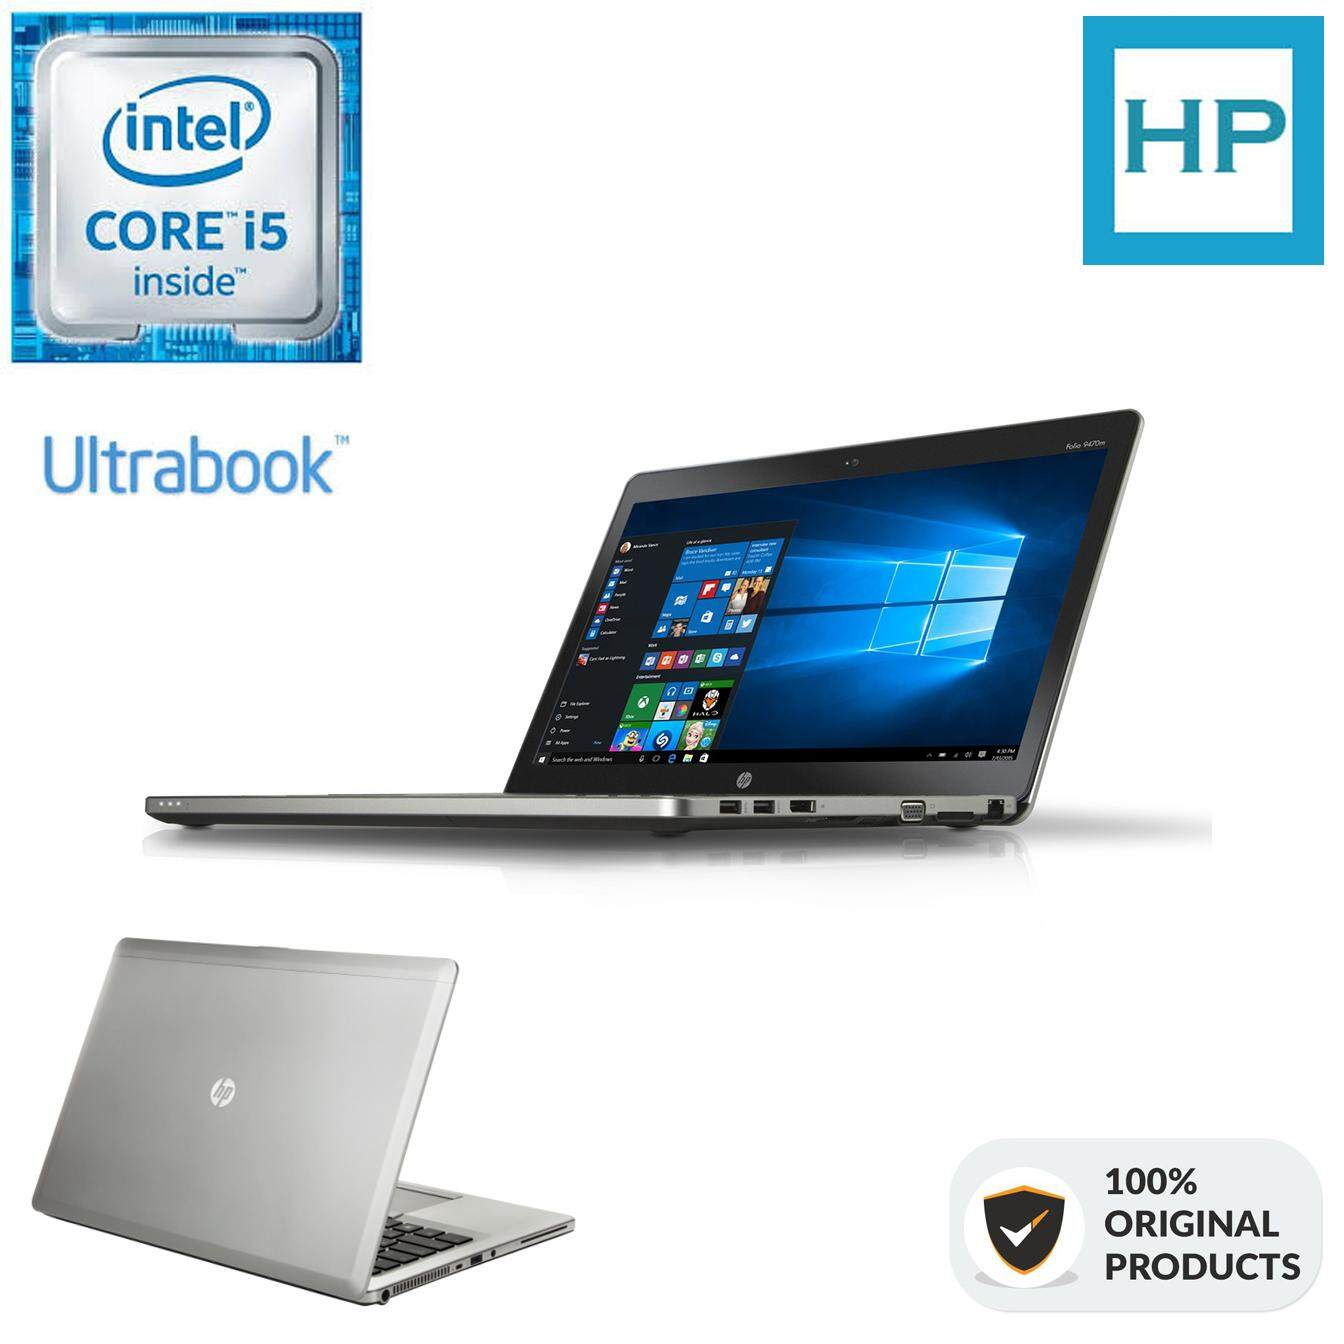 HP ELITEBOOK FOLIO 9480M [ULTRABOOK] [CORE I5 G4  8GBRAM  1TB STORAGE] Malaysia